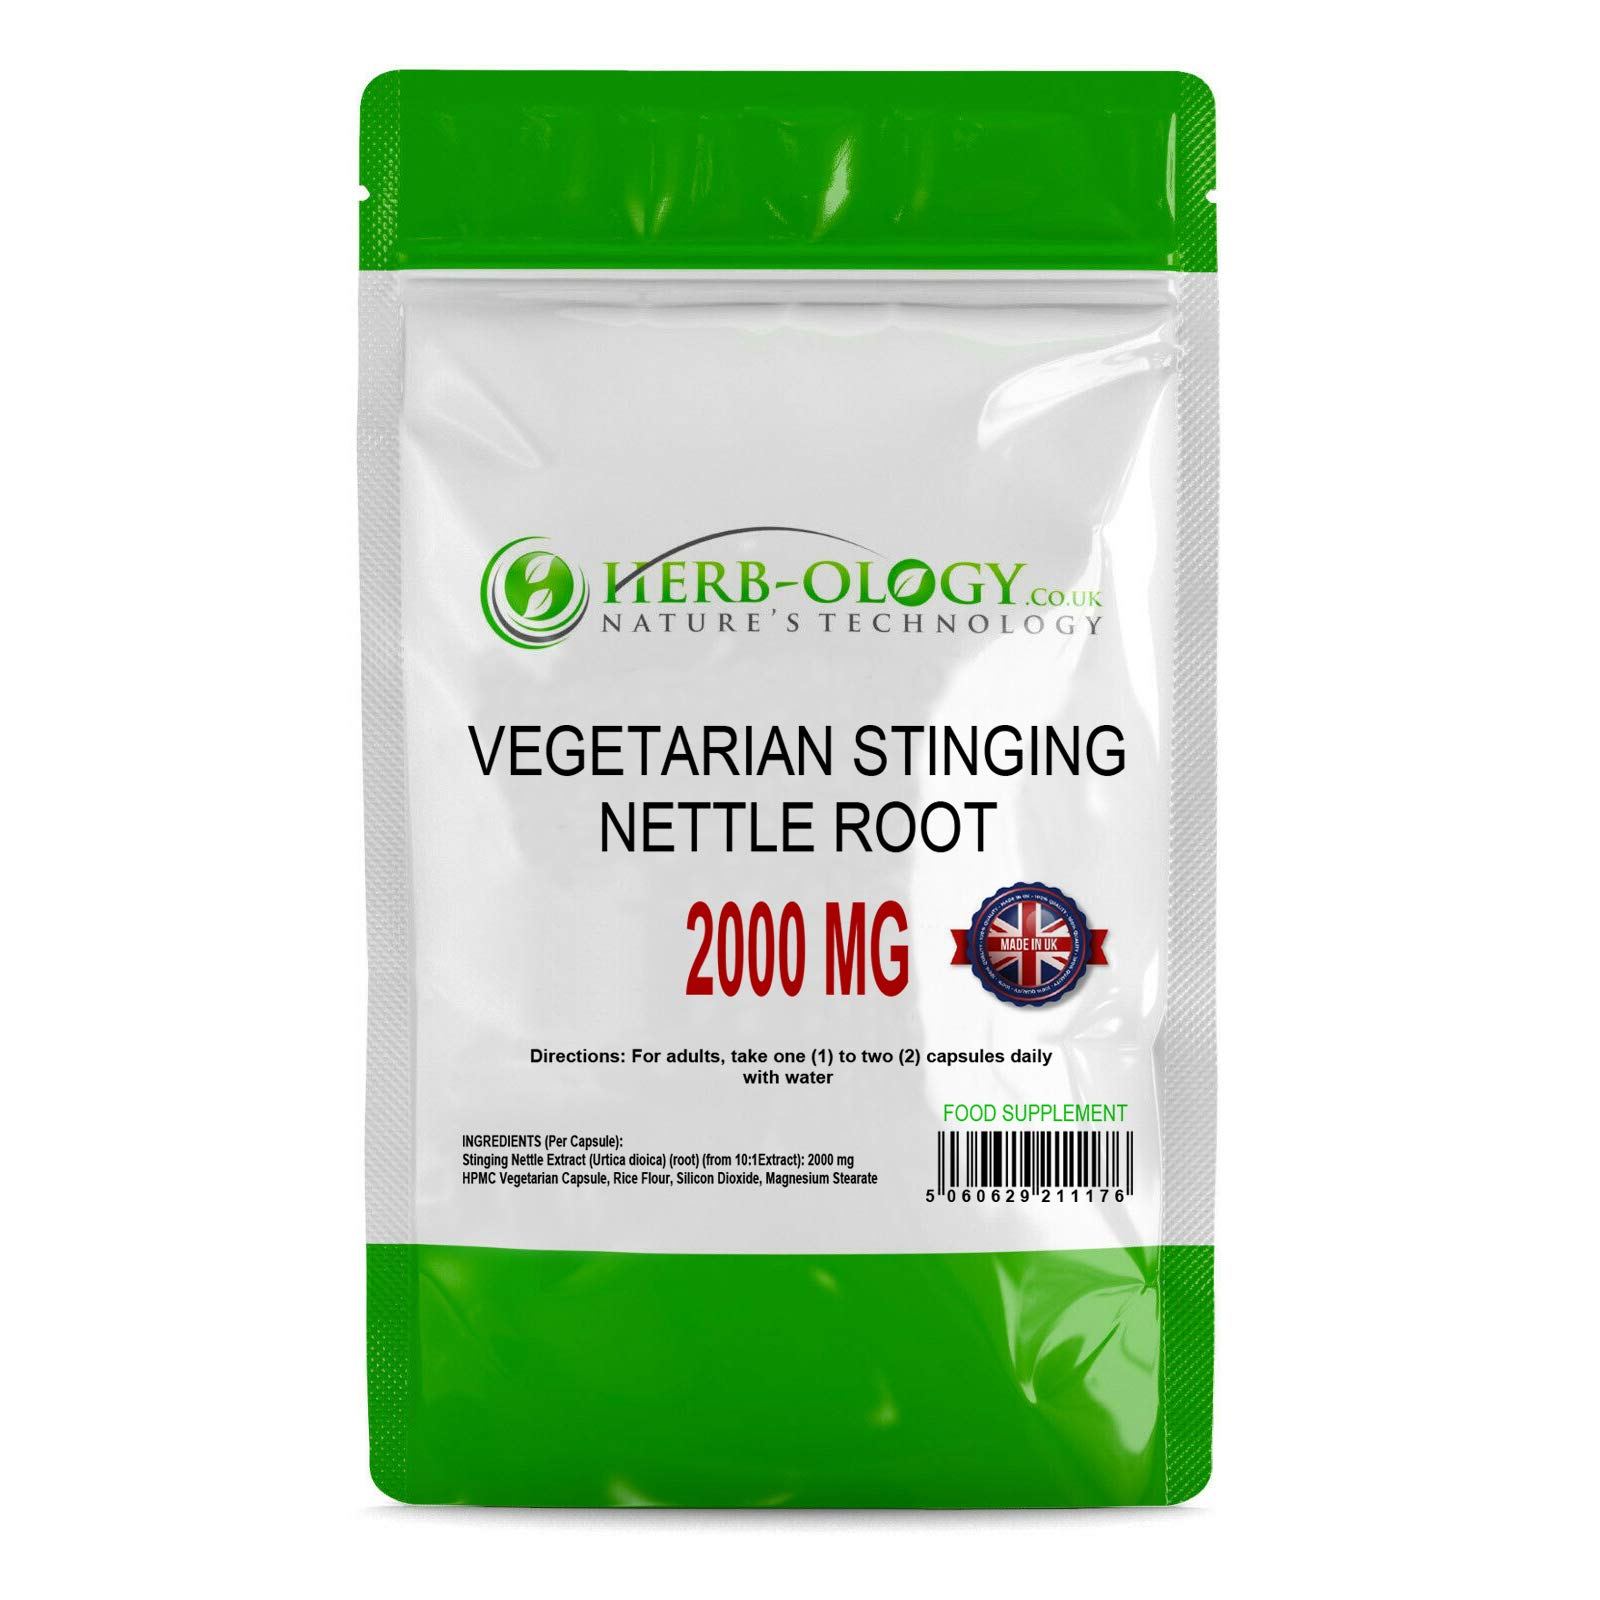 Herb-Ology Stinging Nettle Root Capsules | 120 Nettle Root Capsules (10:1 Extract) 2000mg | Suitable for Vegitarians & Manufactured in The UK in an ISO Certified Facility